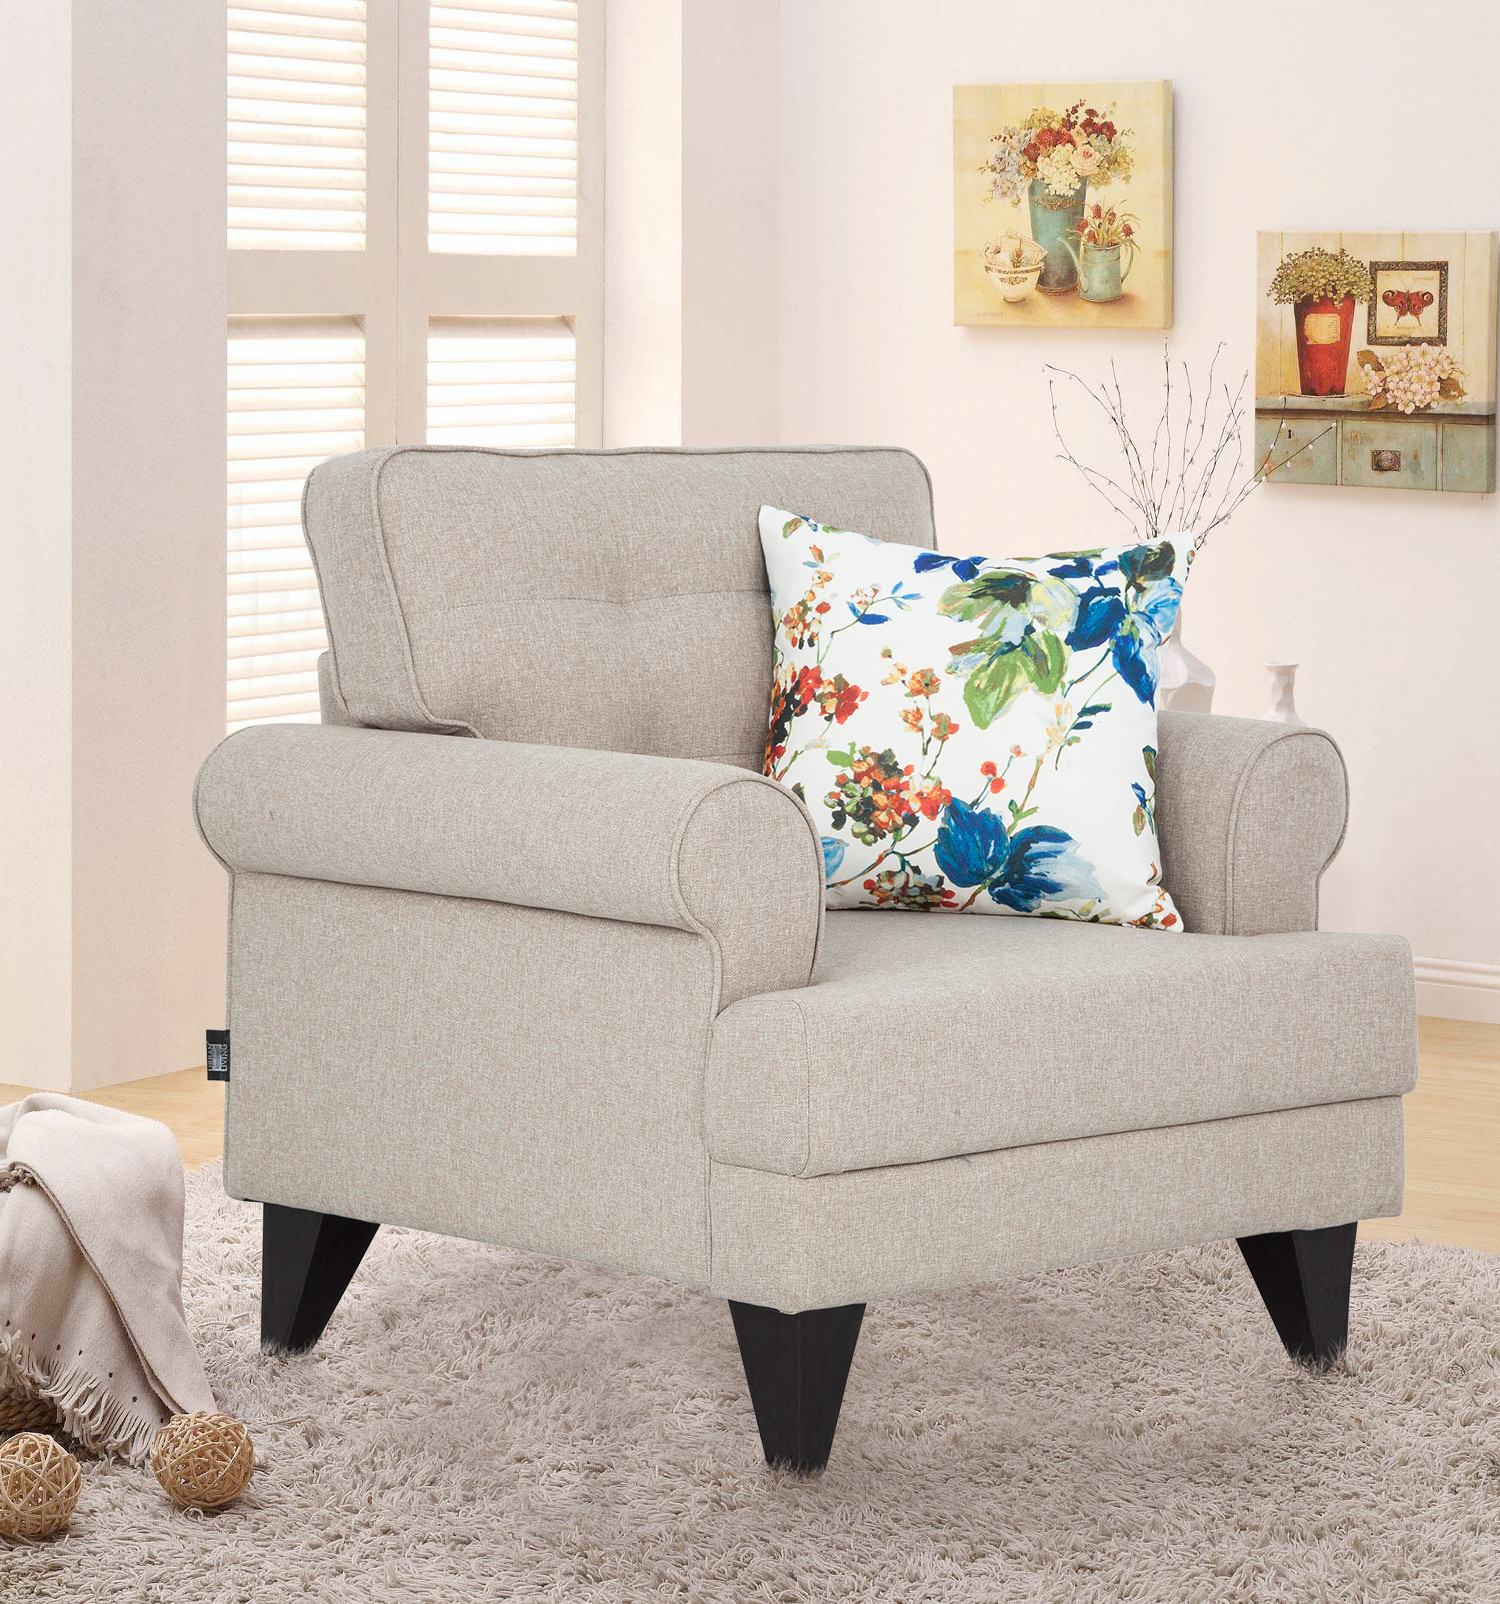 Miller Fabric Single Seater Sofa in Beige Colour by HomeTown